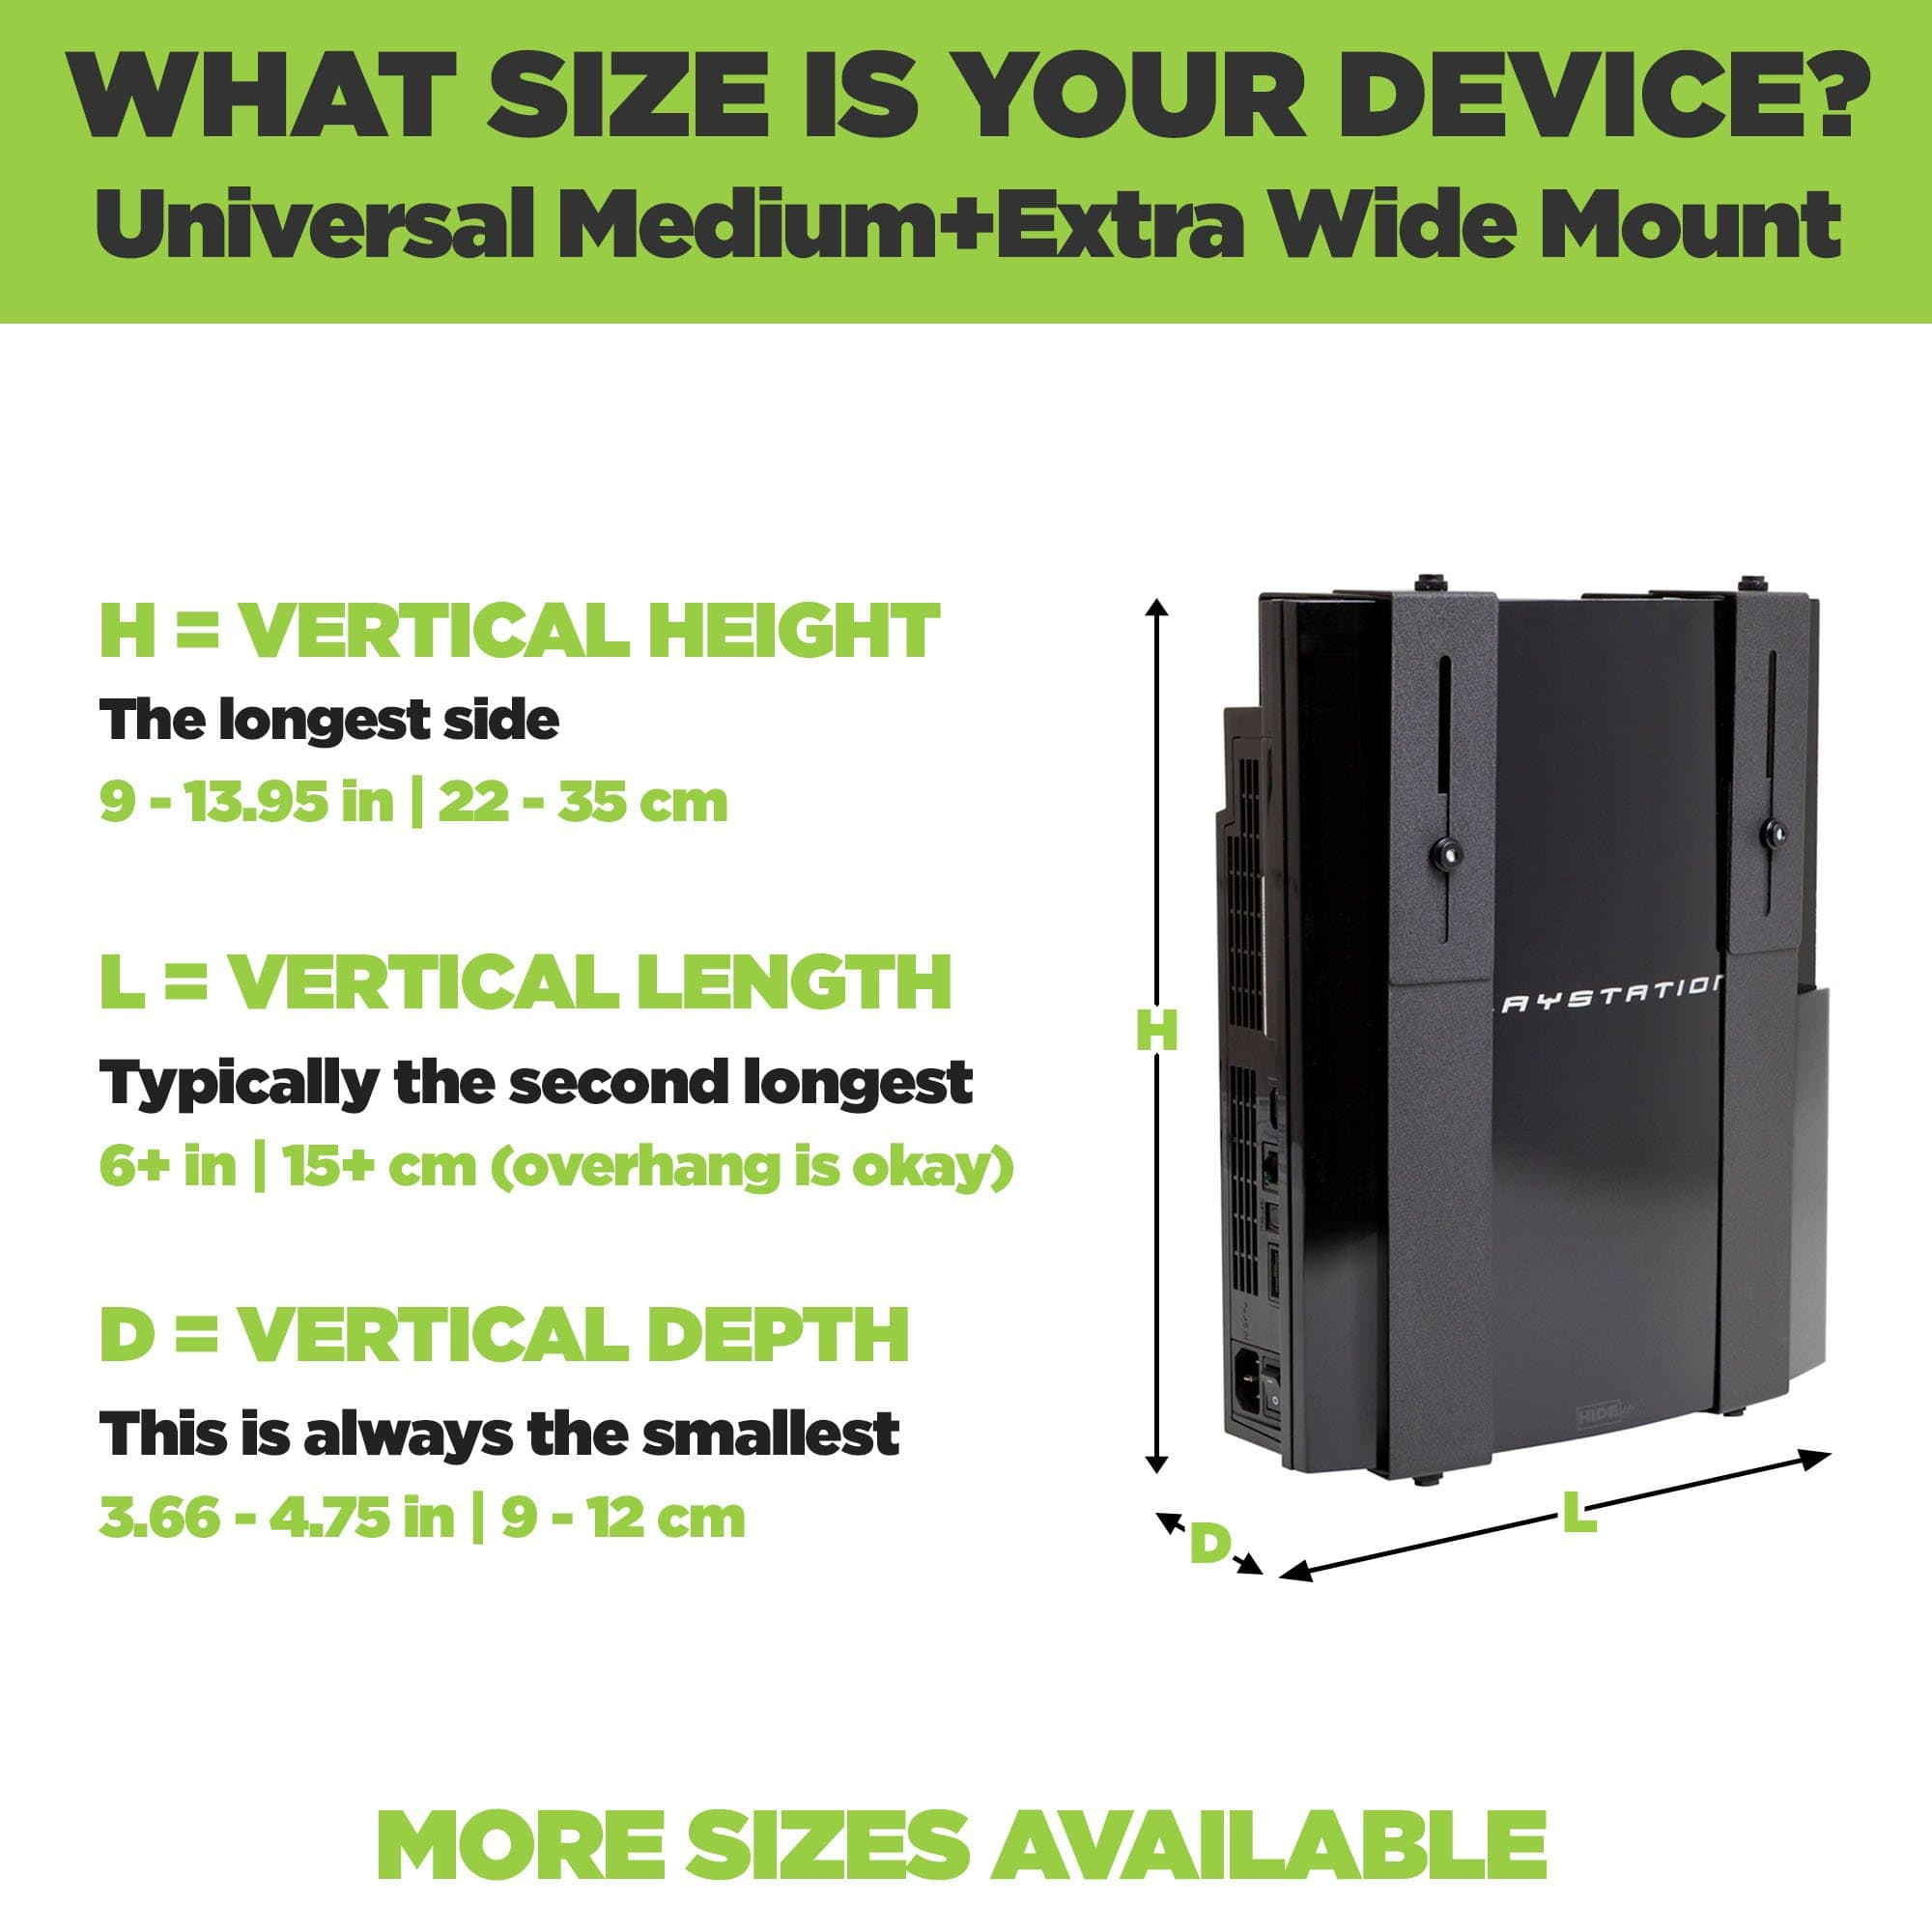 Universal Medium Extra Wide Mount adjusts to fit a wide range of devices including wireless routers and modems.